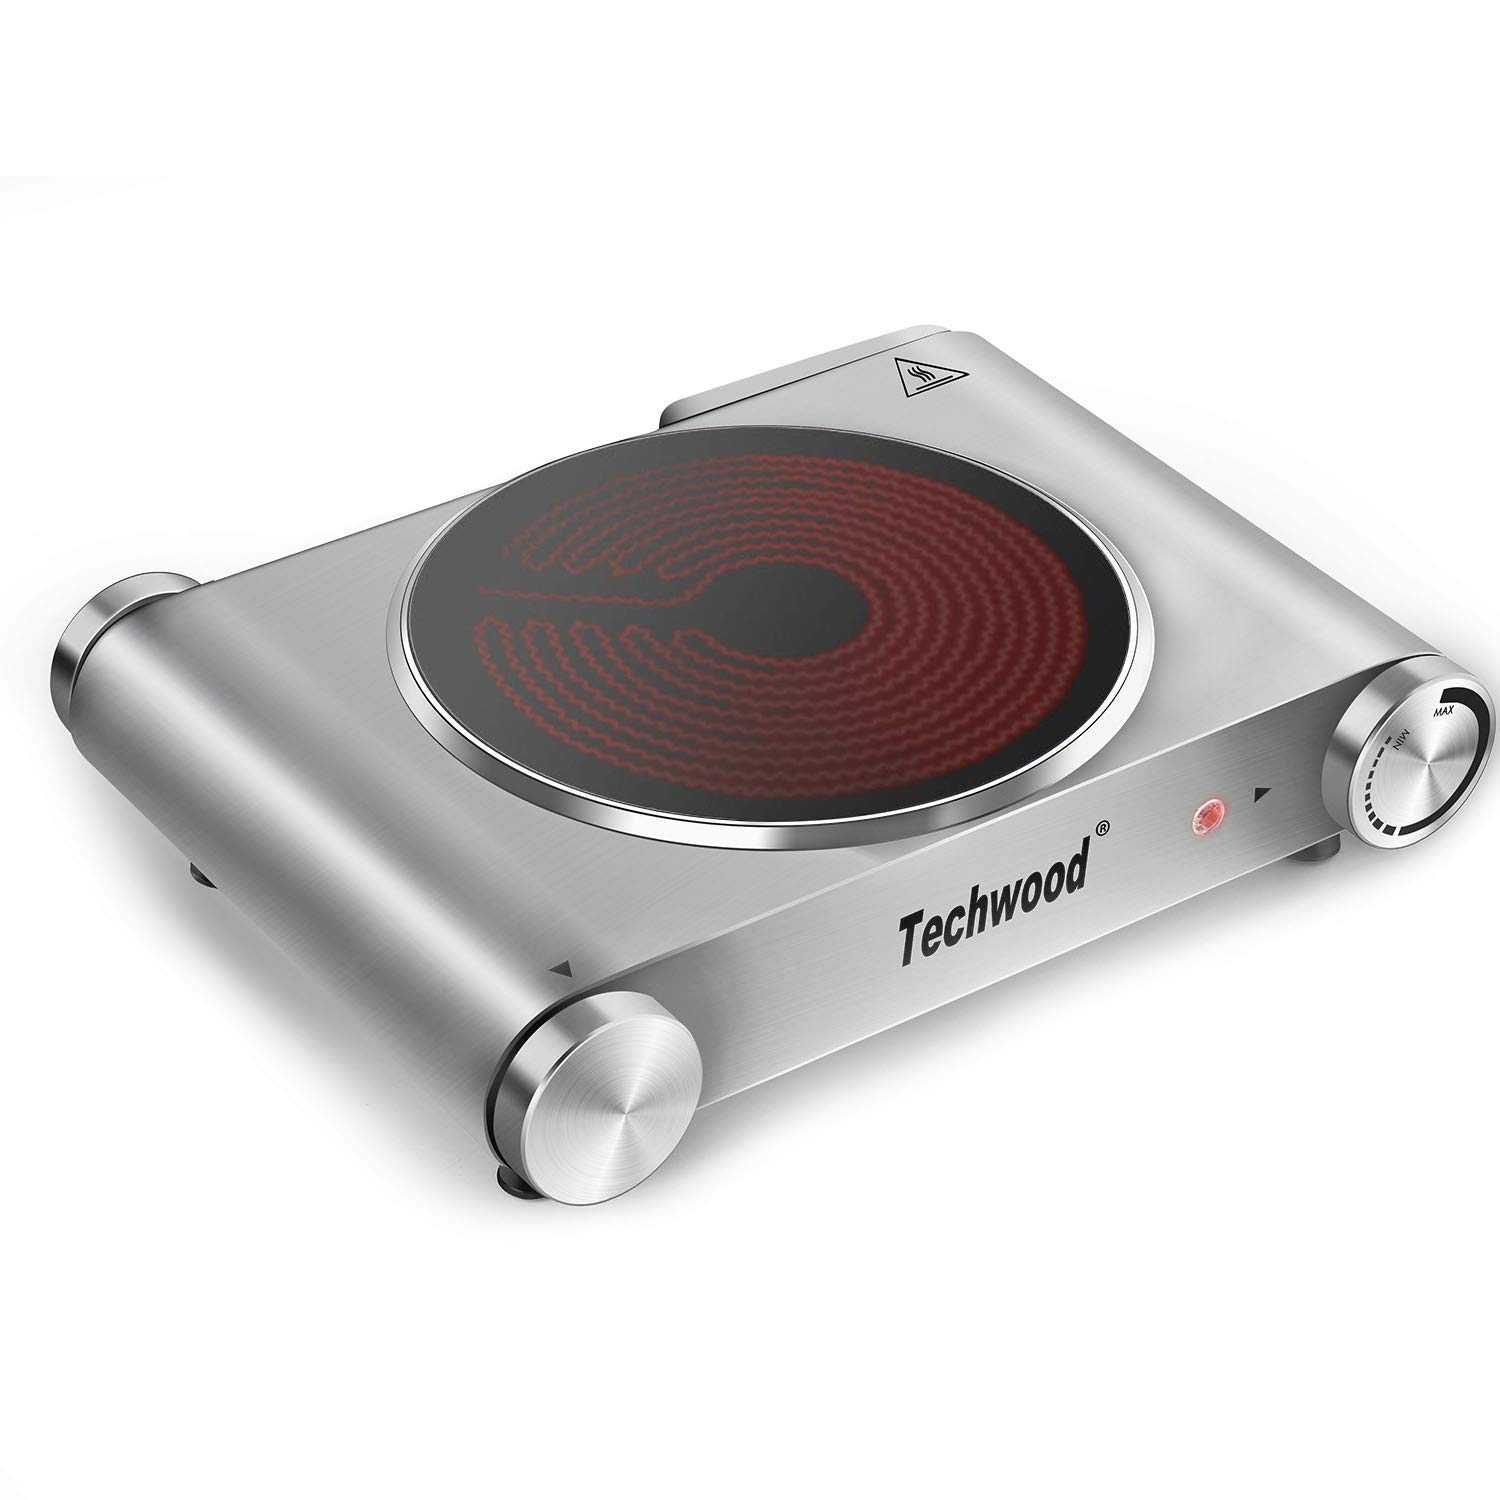 Techwood Hot Plate Electric Burner Single Burner Cast Iron Heating Plate Portable Burner Infrared Ceramic Burner 1200W with Adjustable Temperature Control Non-Slip Rubber Feet Bright Silver Stainless Steel Easy To Clean Upgraded Version ES-3101C